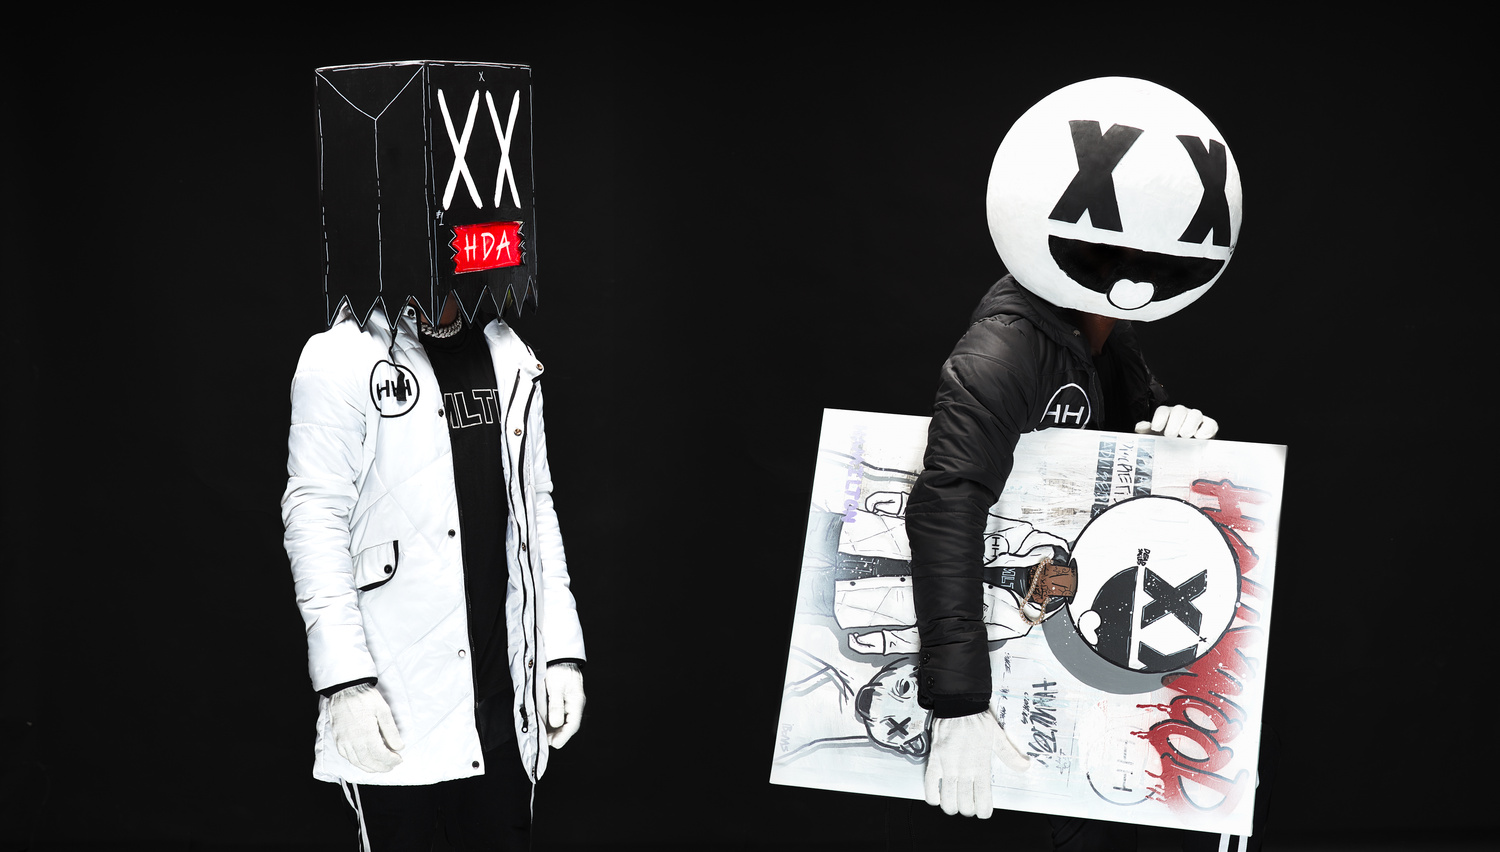 HH Hyperjackets promo images with artist ibombs by jai jacob